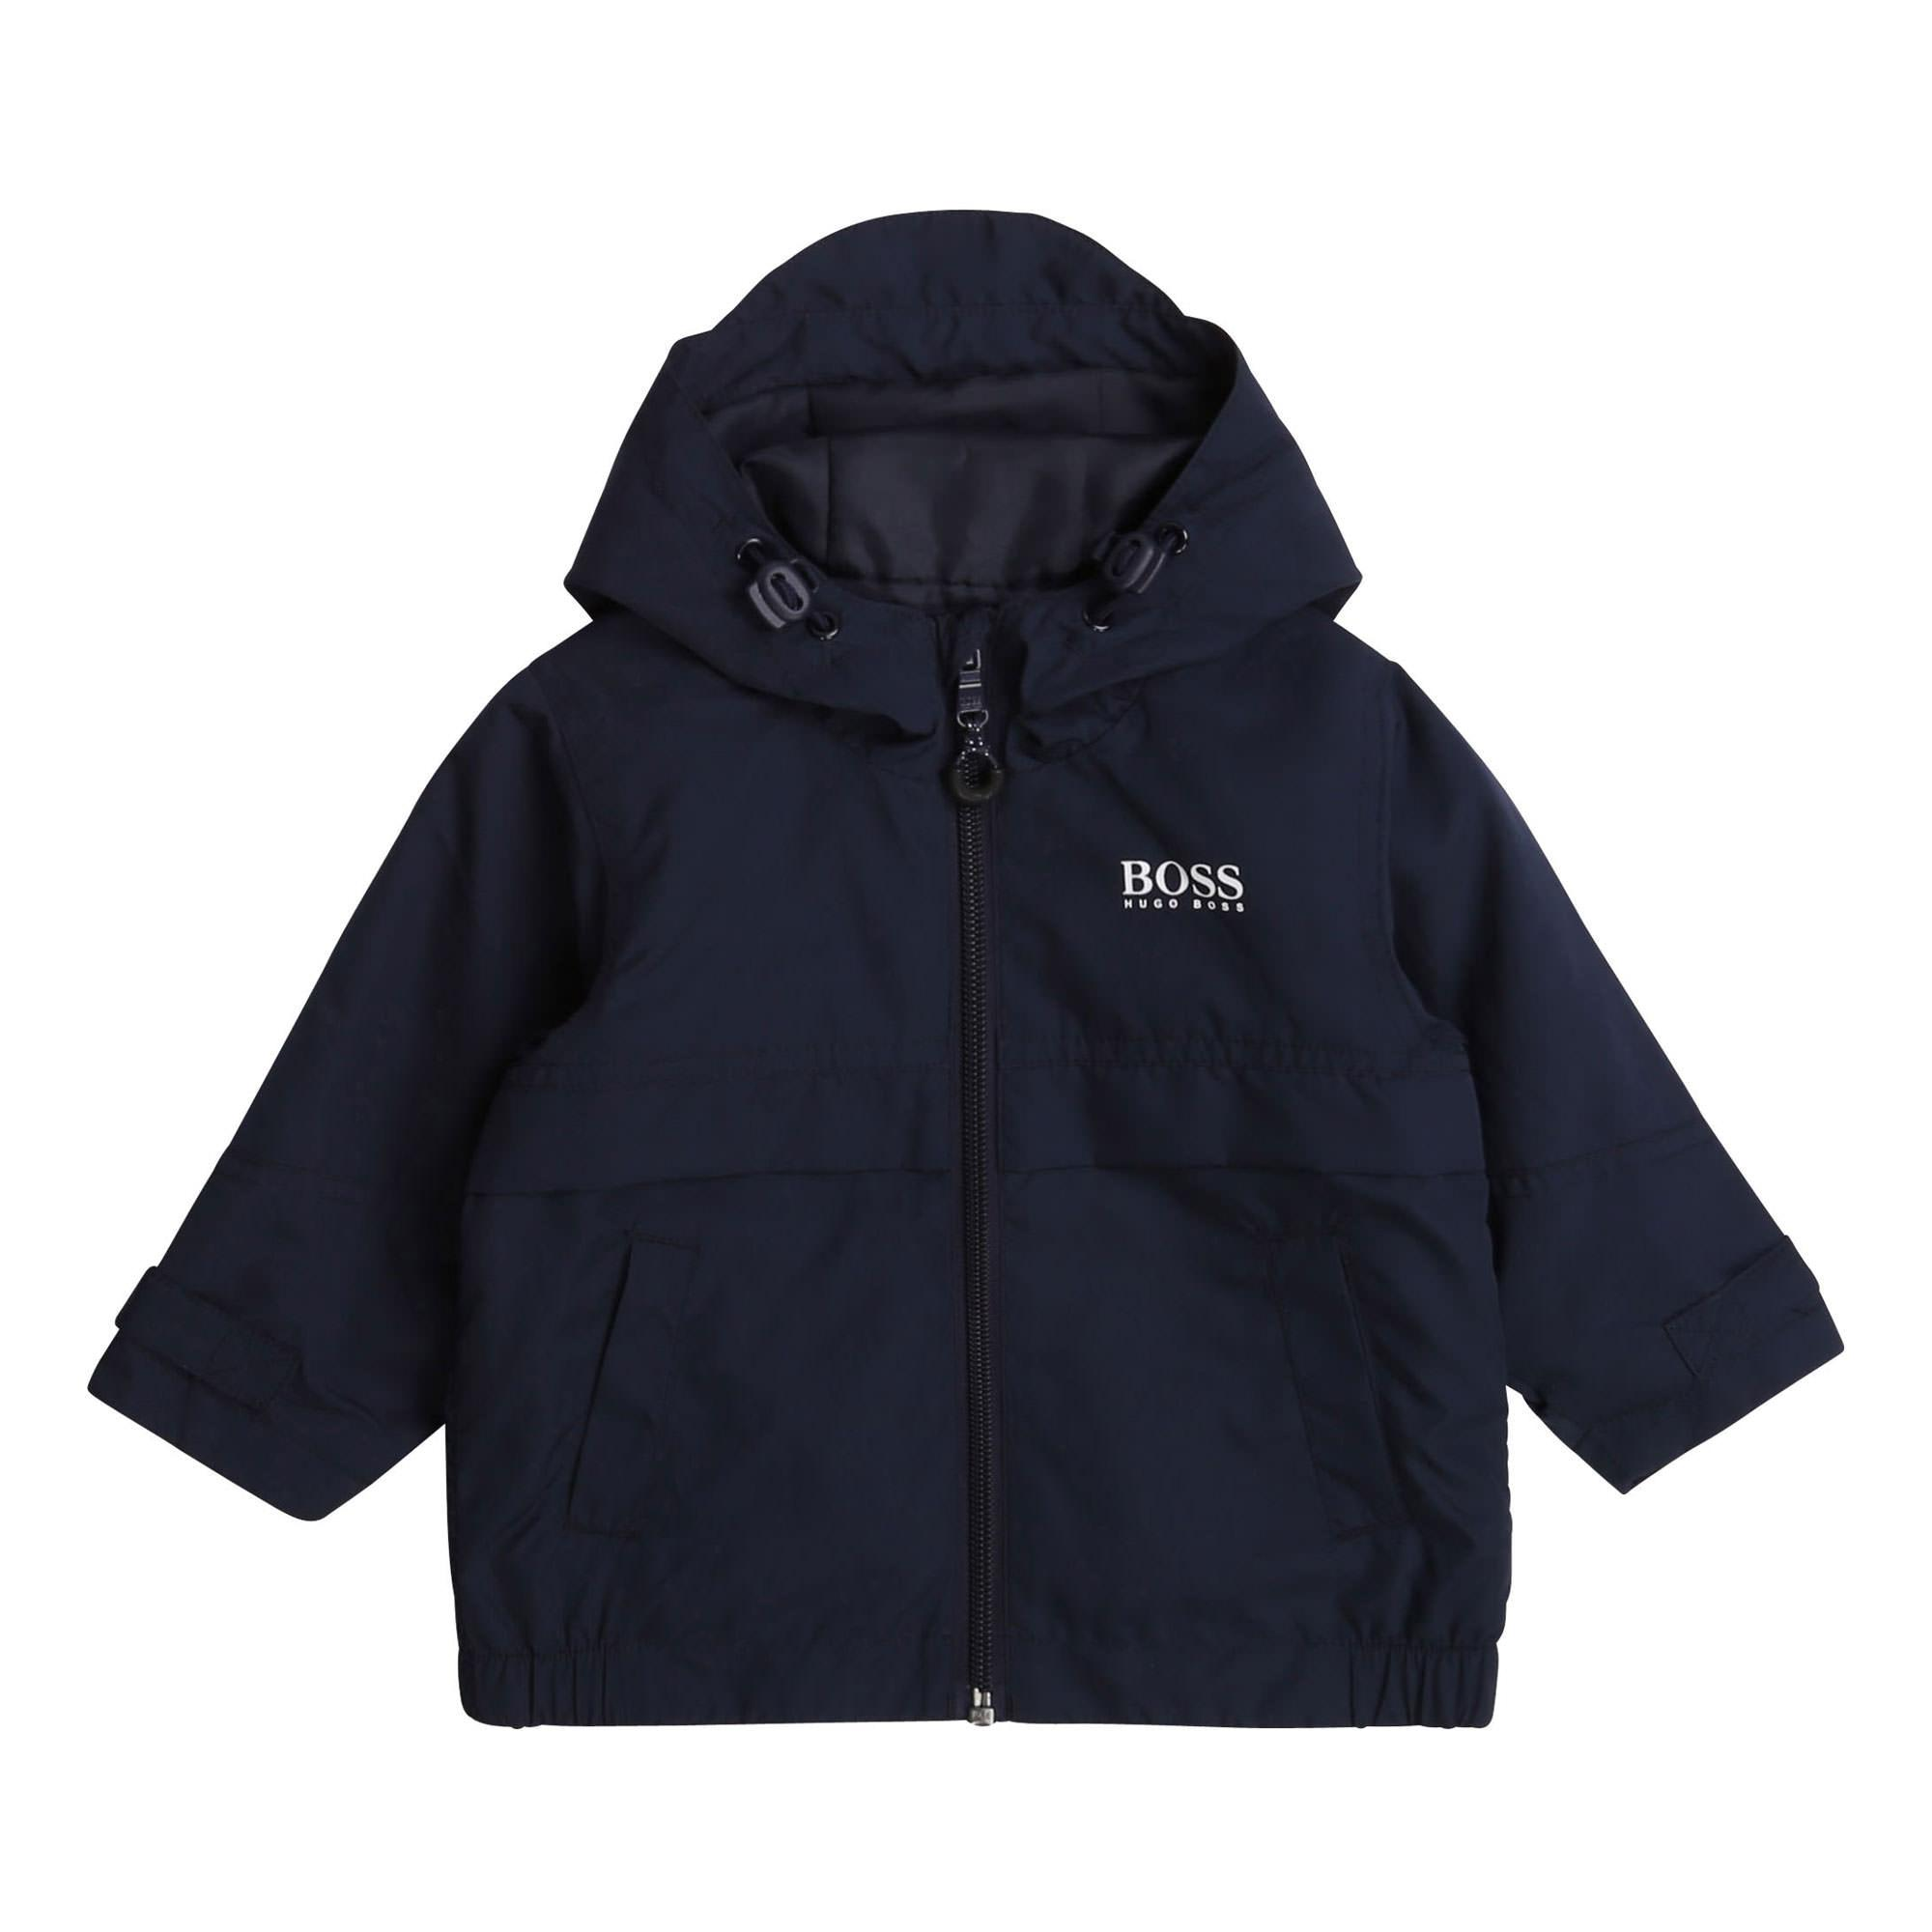 Pointed Field jacket